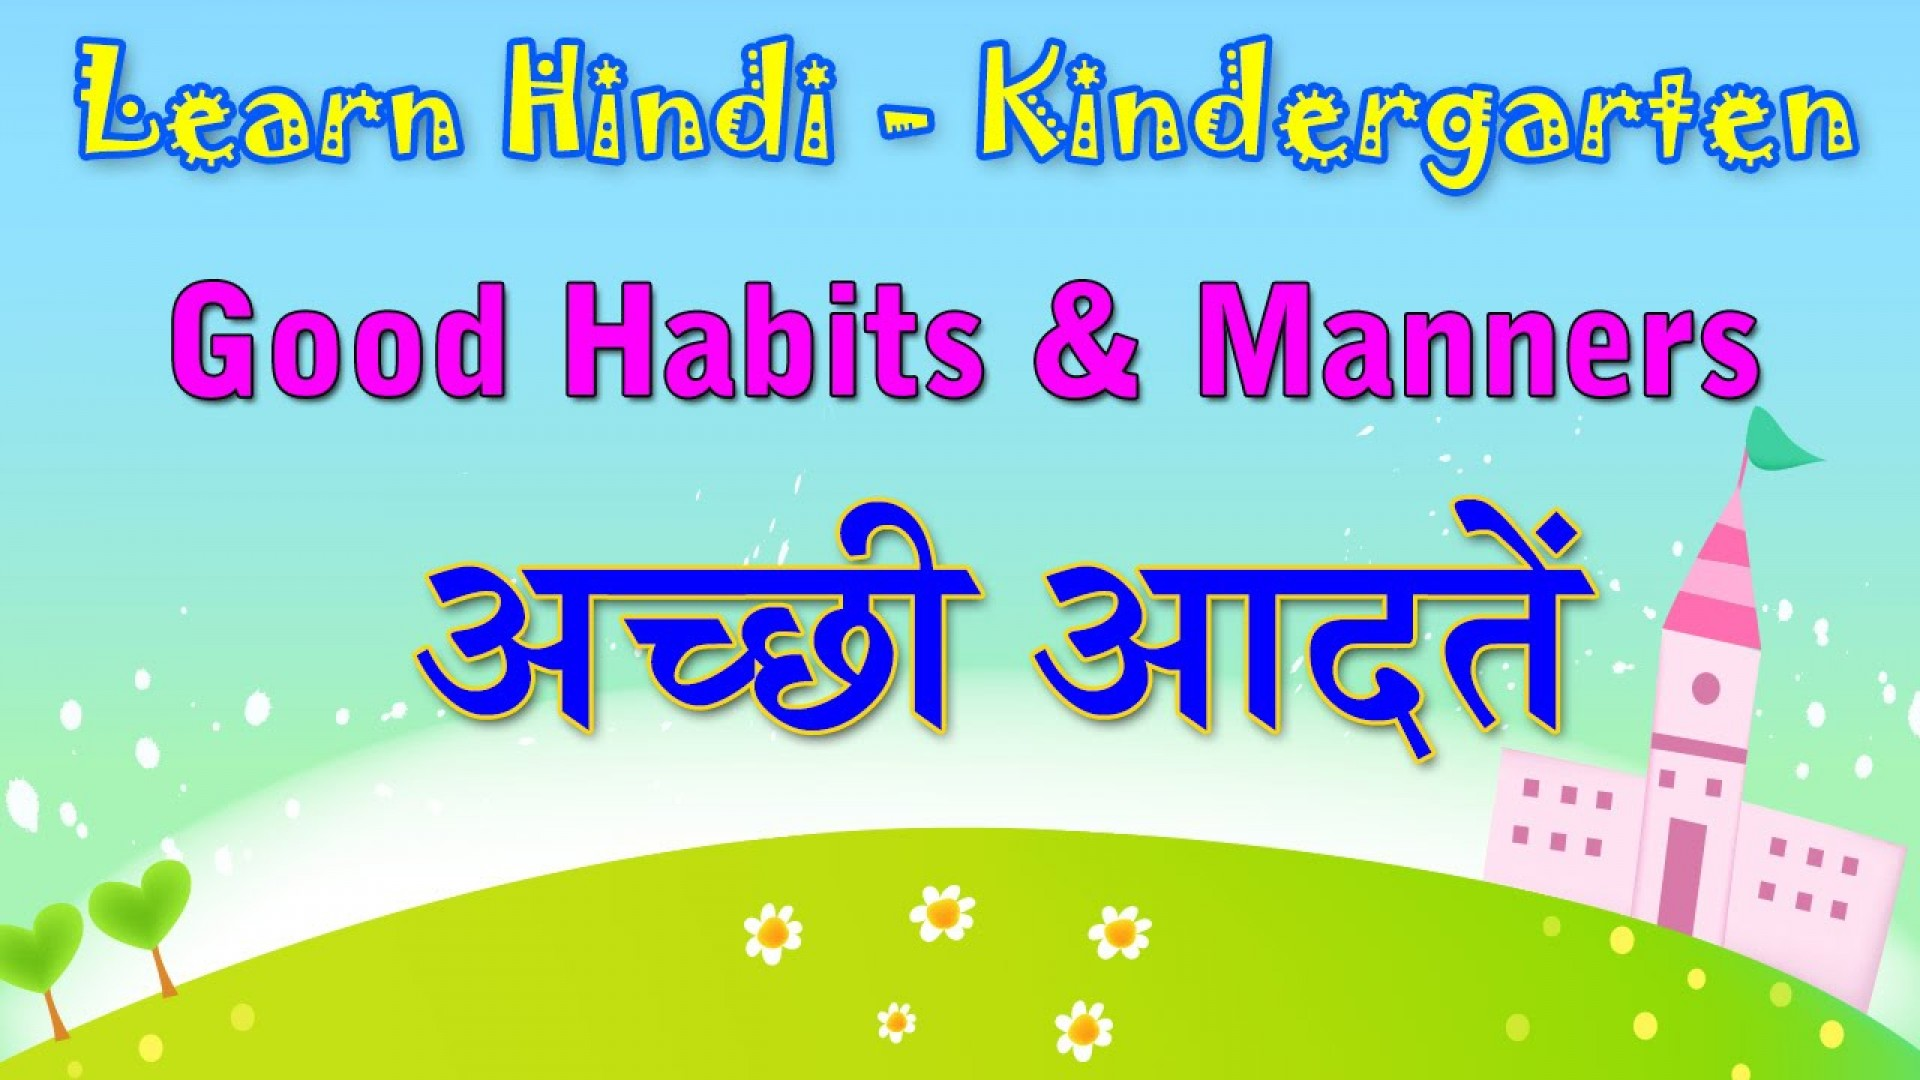 004 Essay Example Good Habits In Hindi Exceptional And Bad Healthy Eating 1920